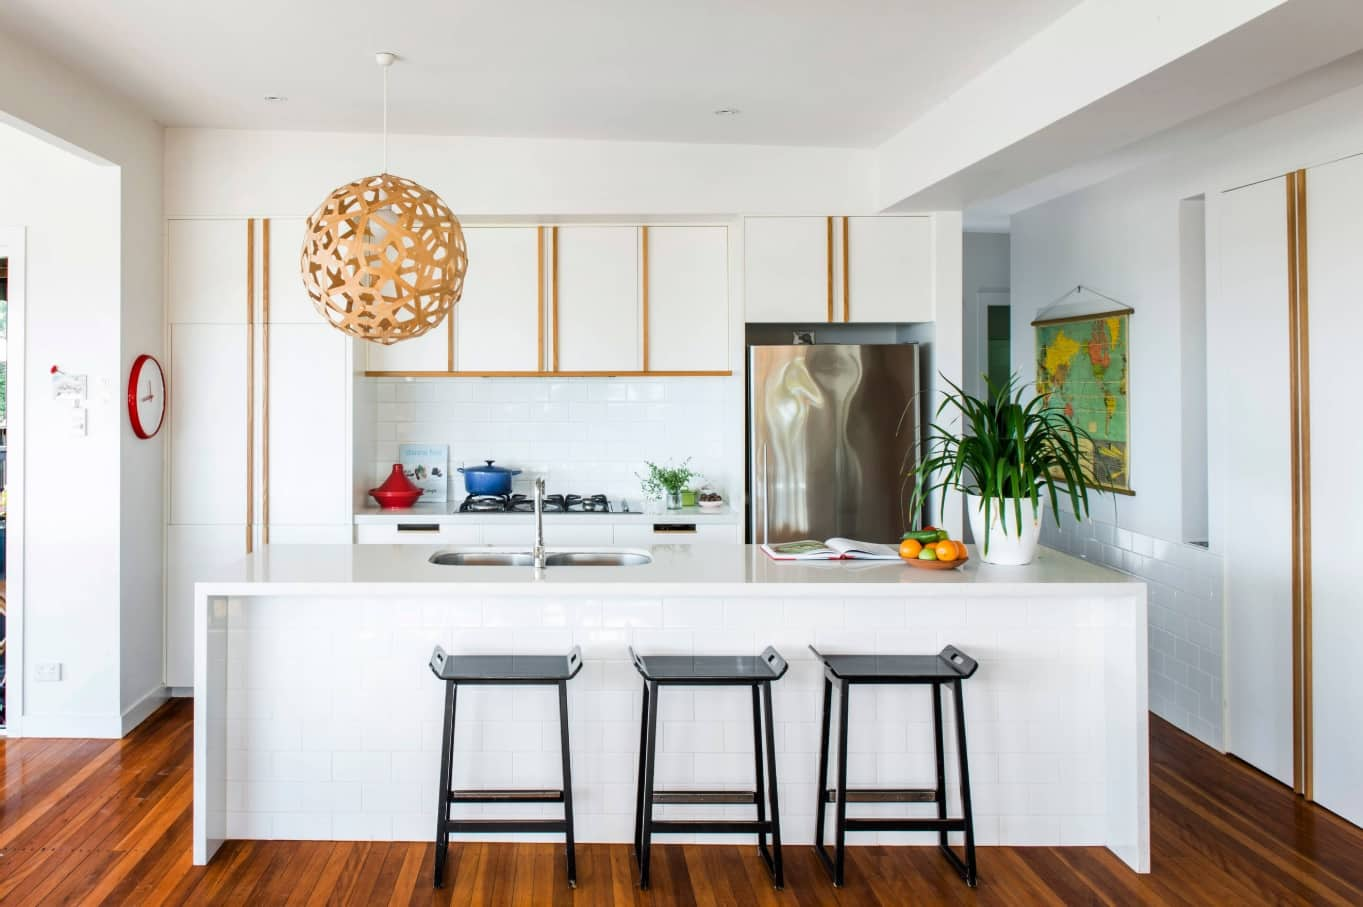 How to Make the Most of Your Small Kitchen. White kitchen with island in Contemporary style and with natural hardwood floor